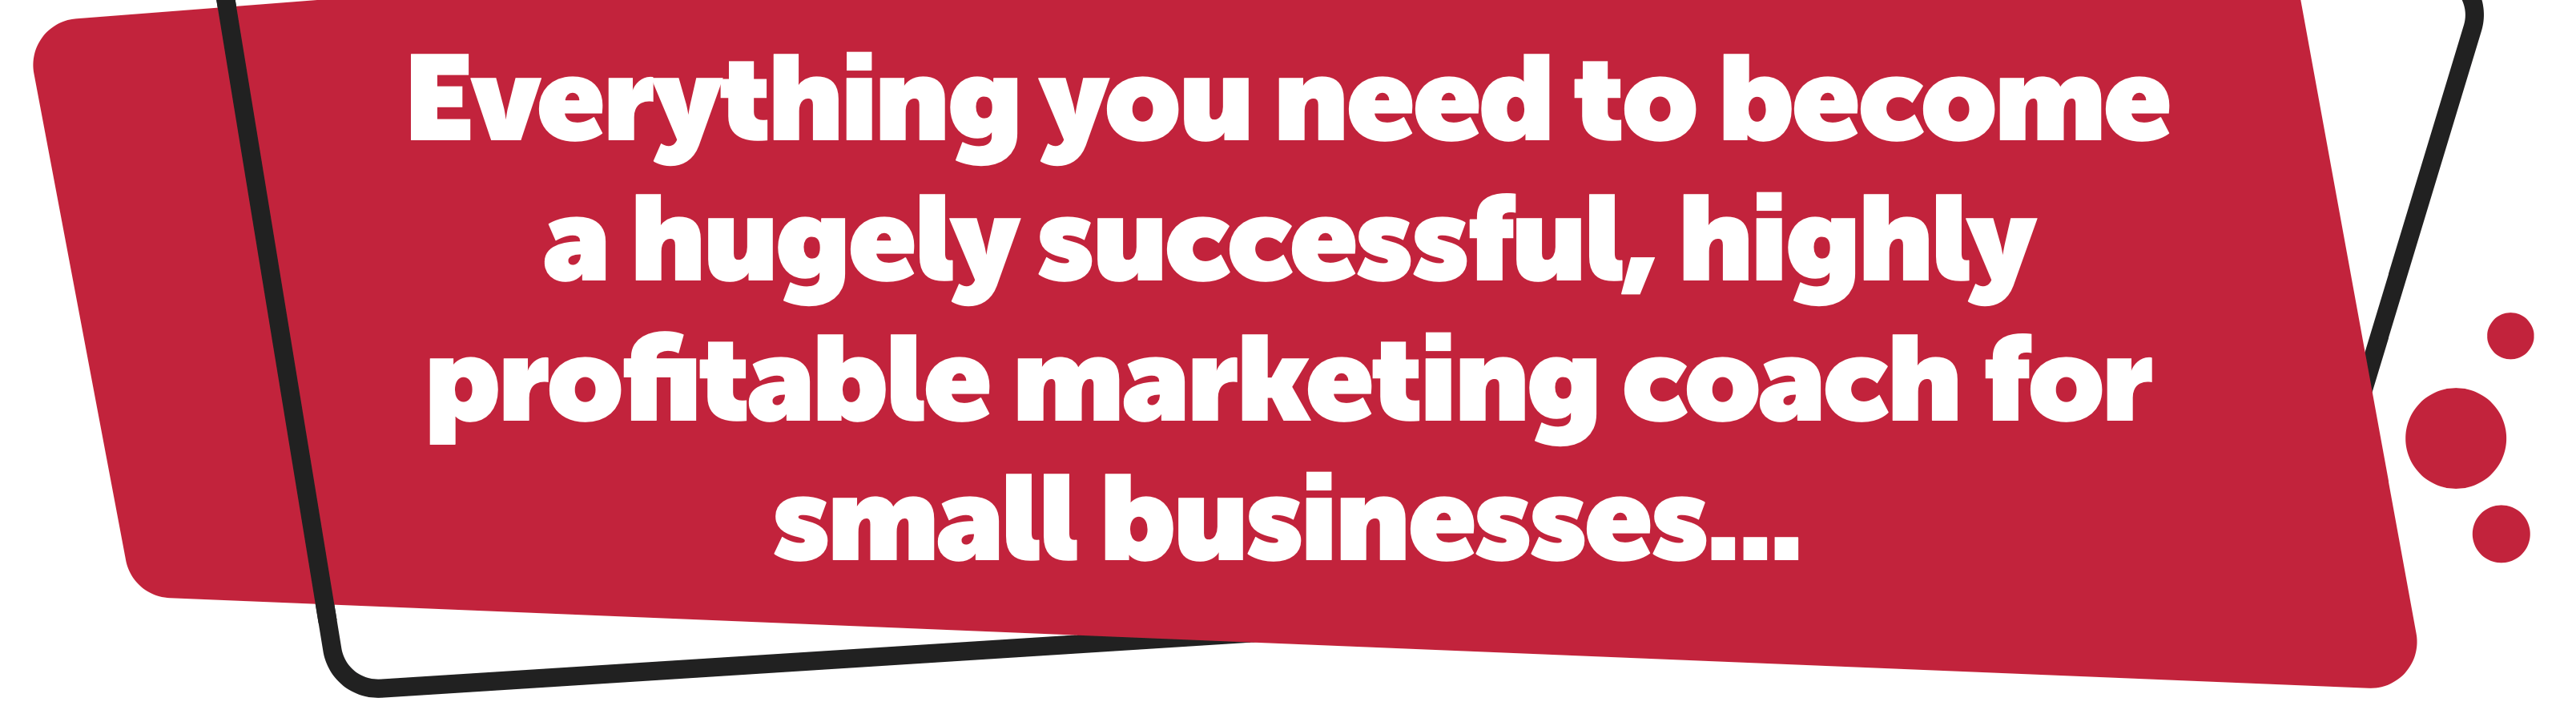 Everything you need to become a highly successful, highly profitable marketing coach for small businesses